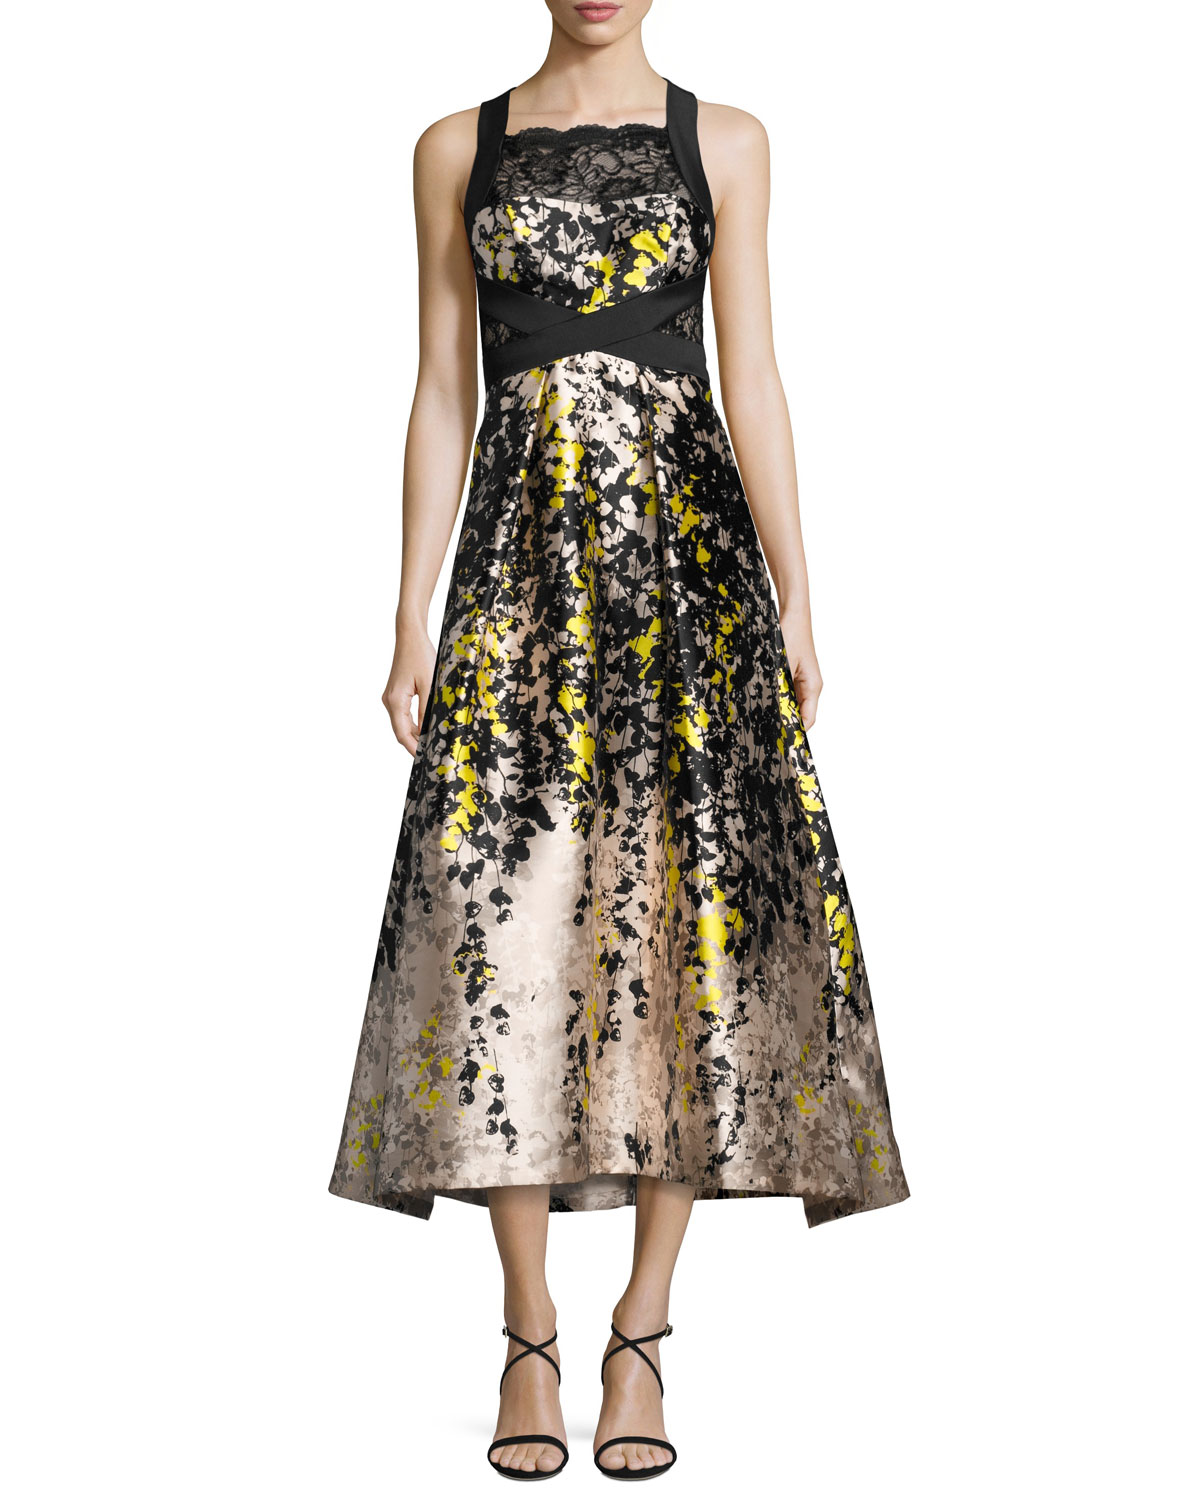 Sleeveless Floral Lace & Satin Cocktail Dress, Black/Yellow